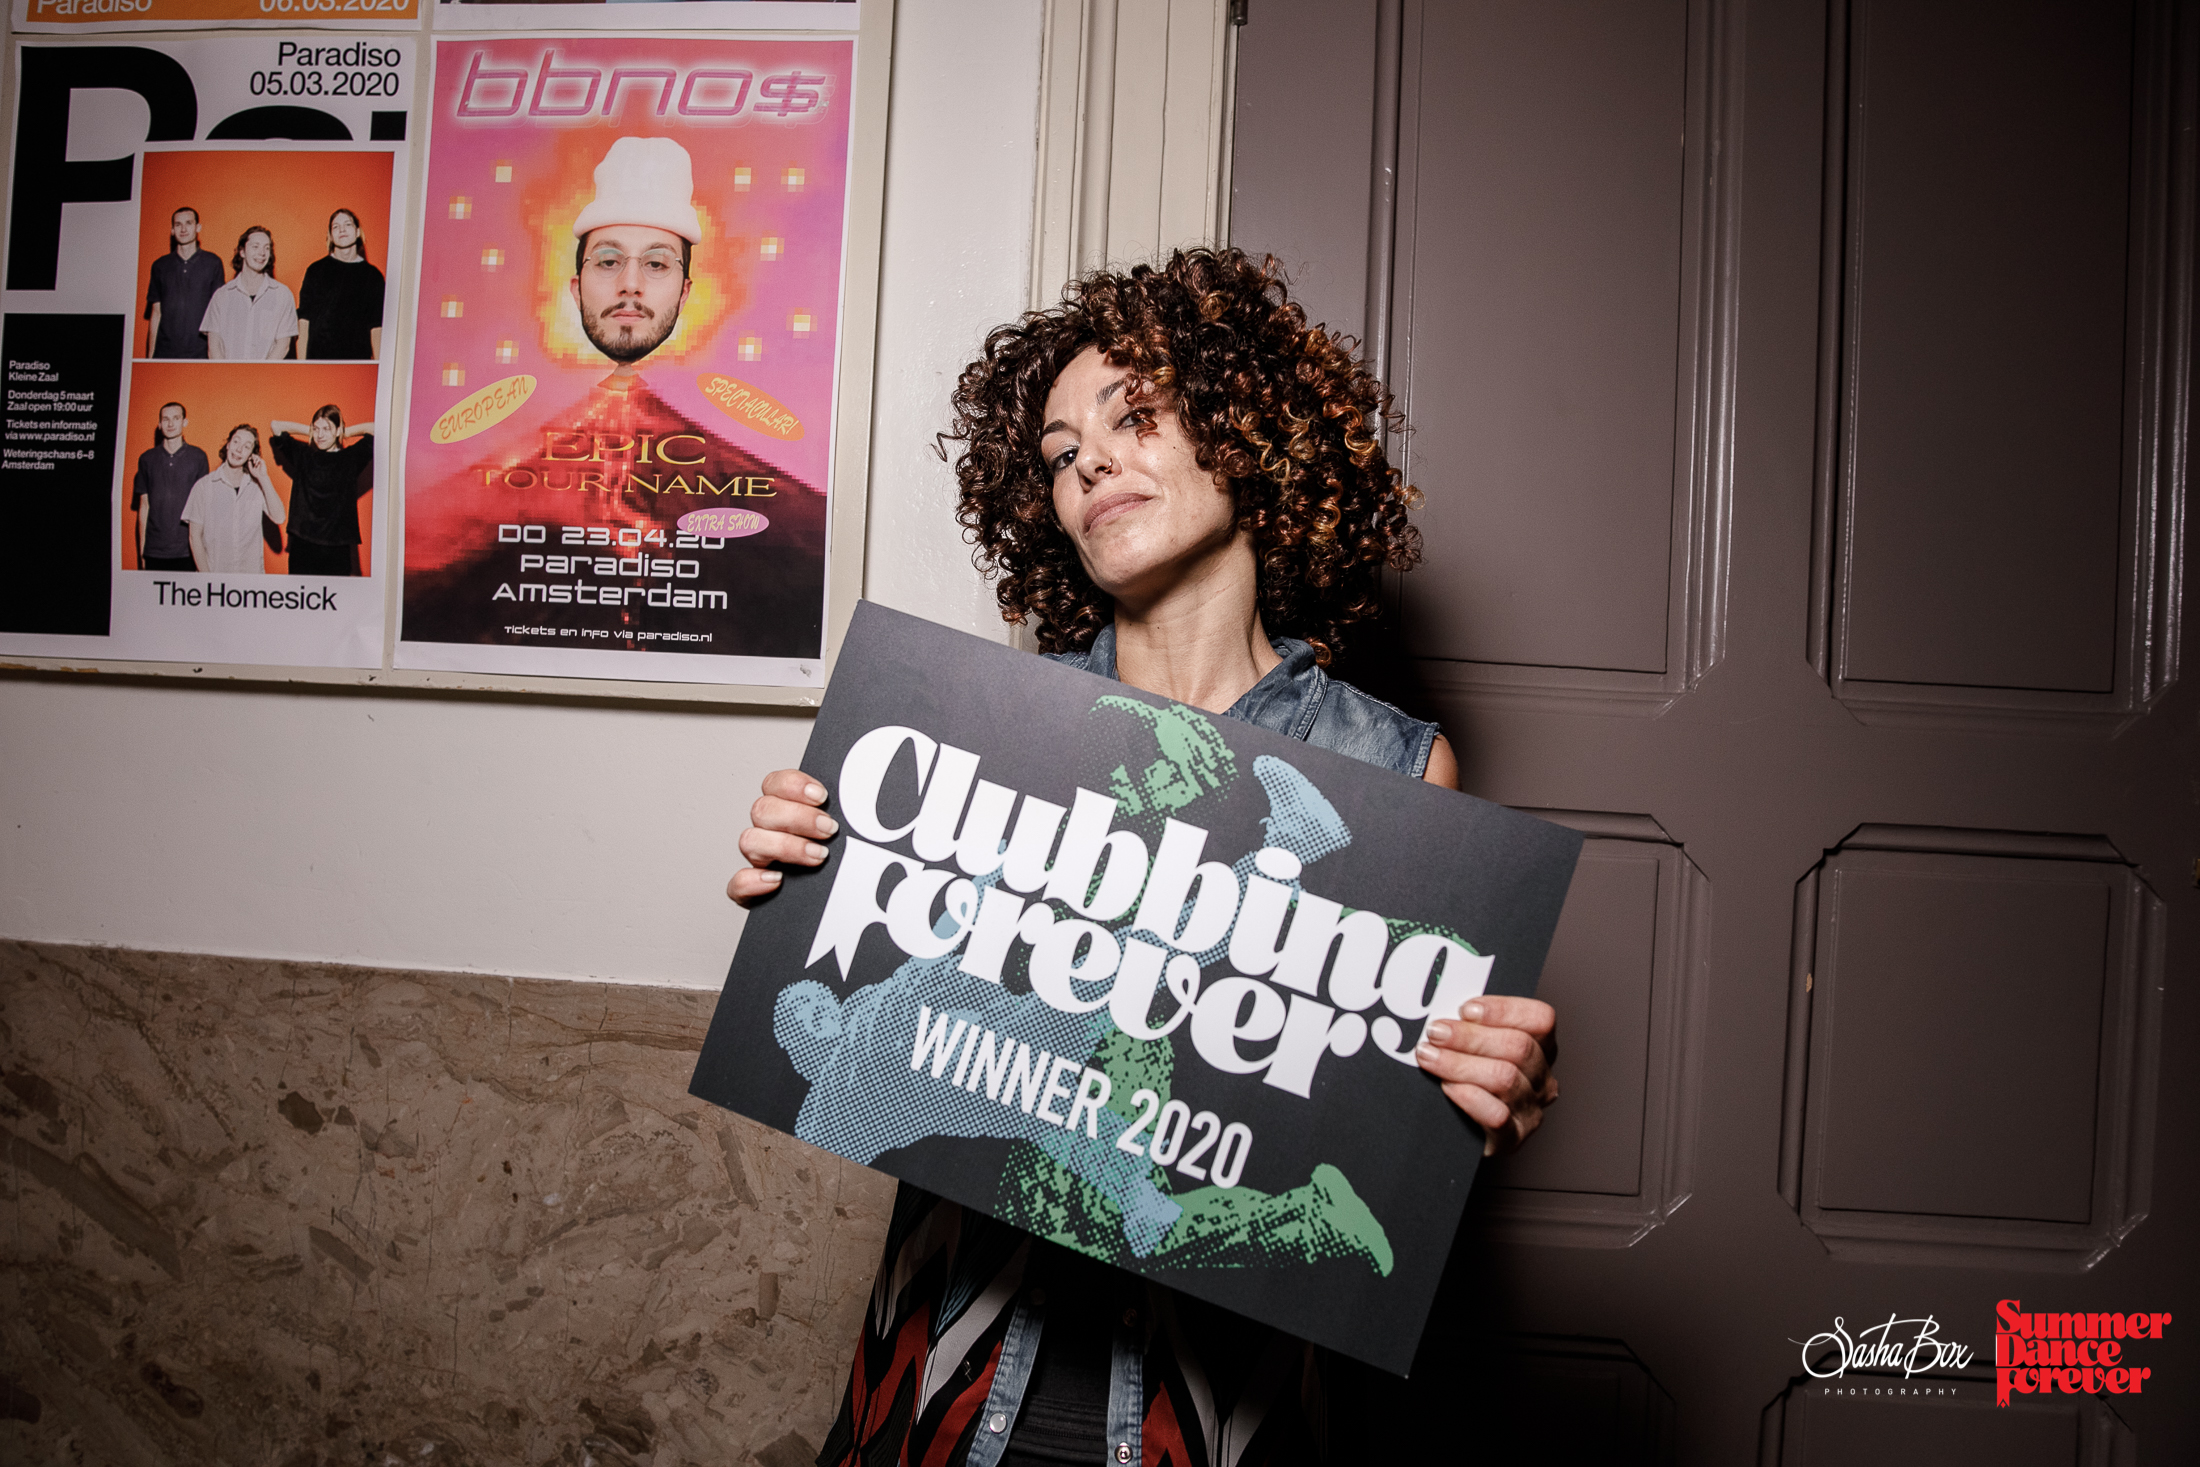 Gló wins third edition of Clubbing Forever!